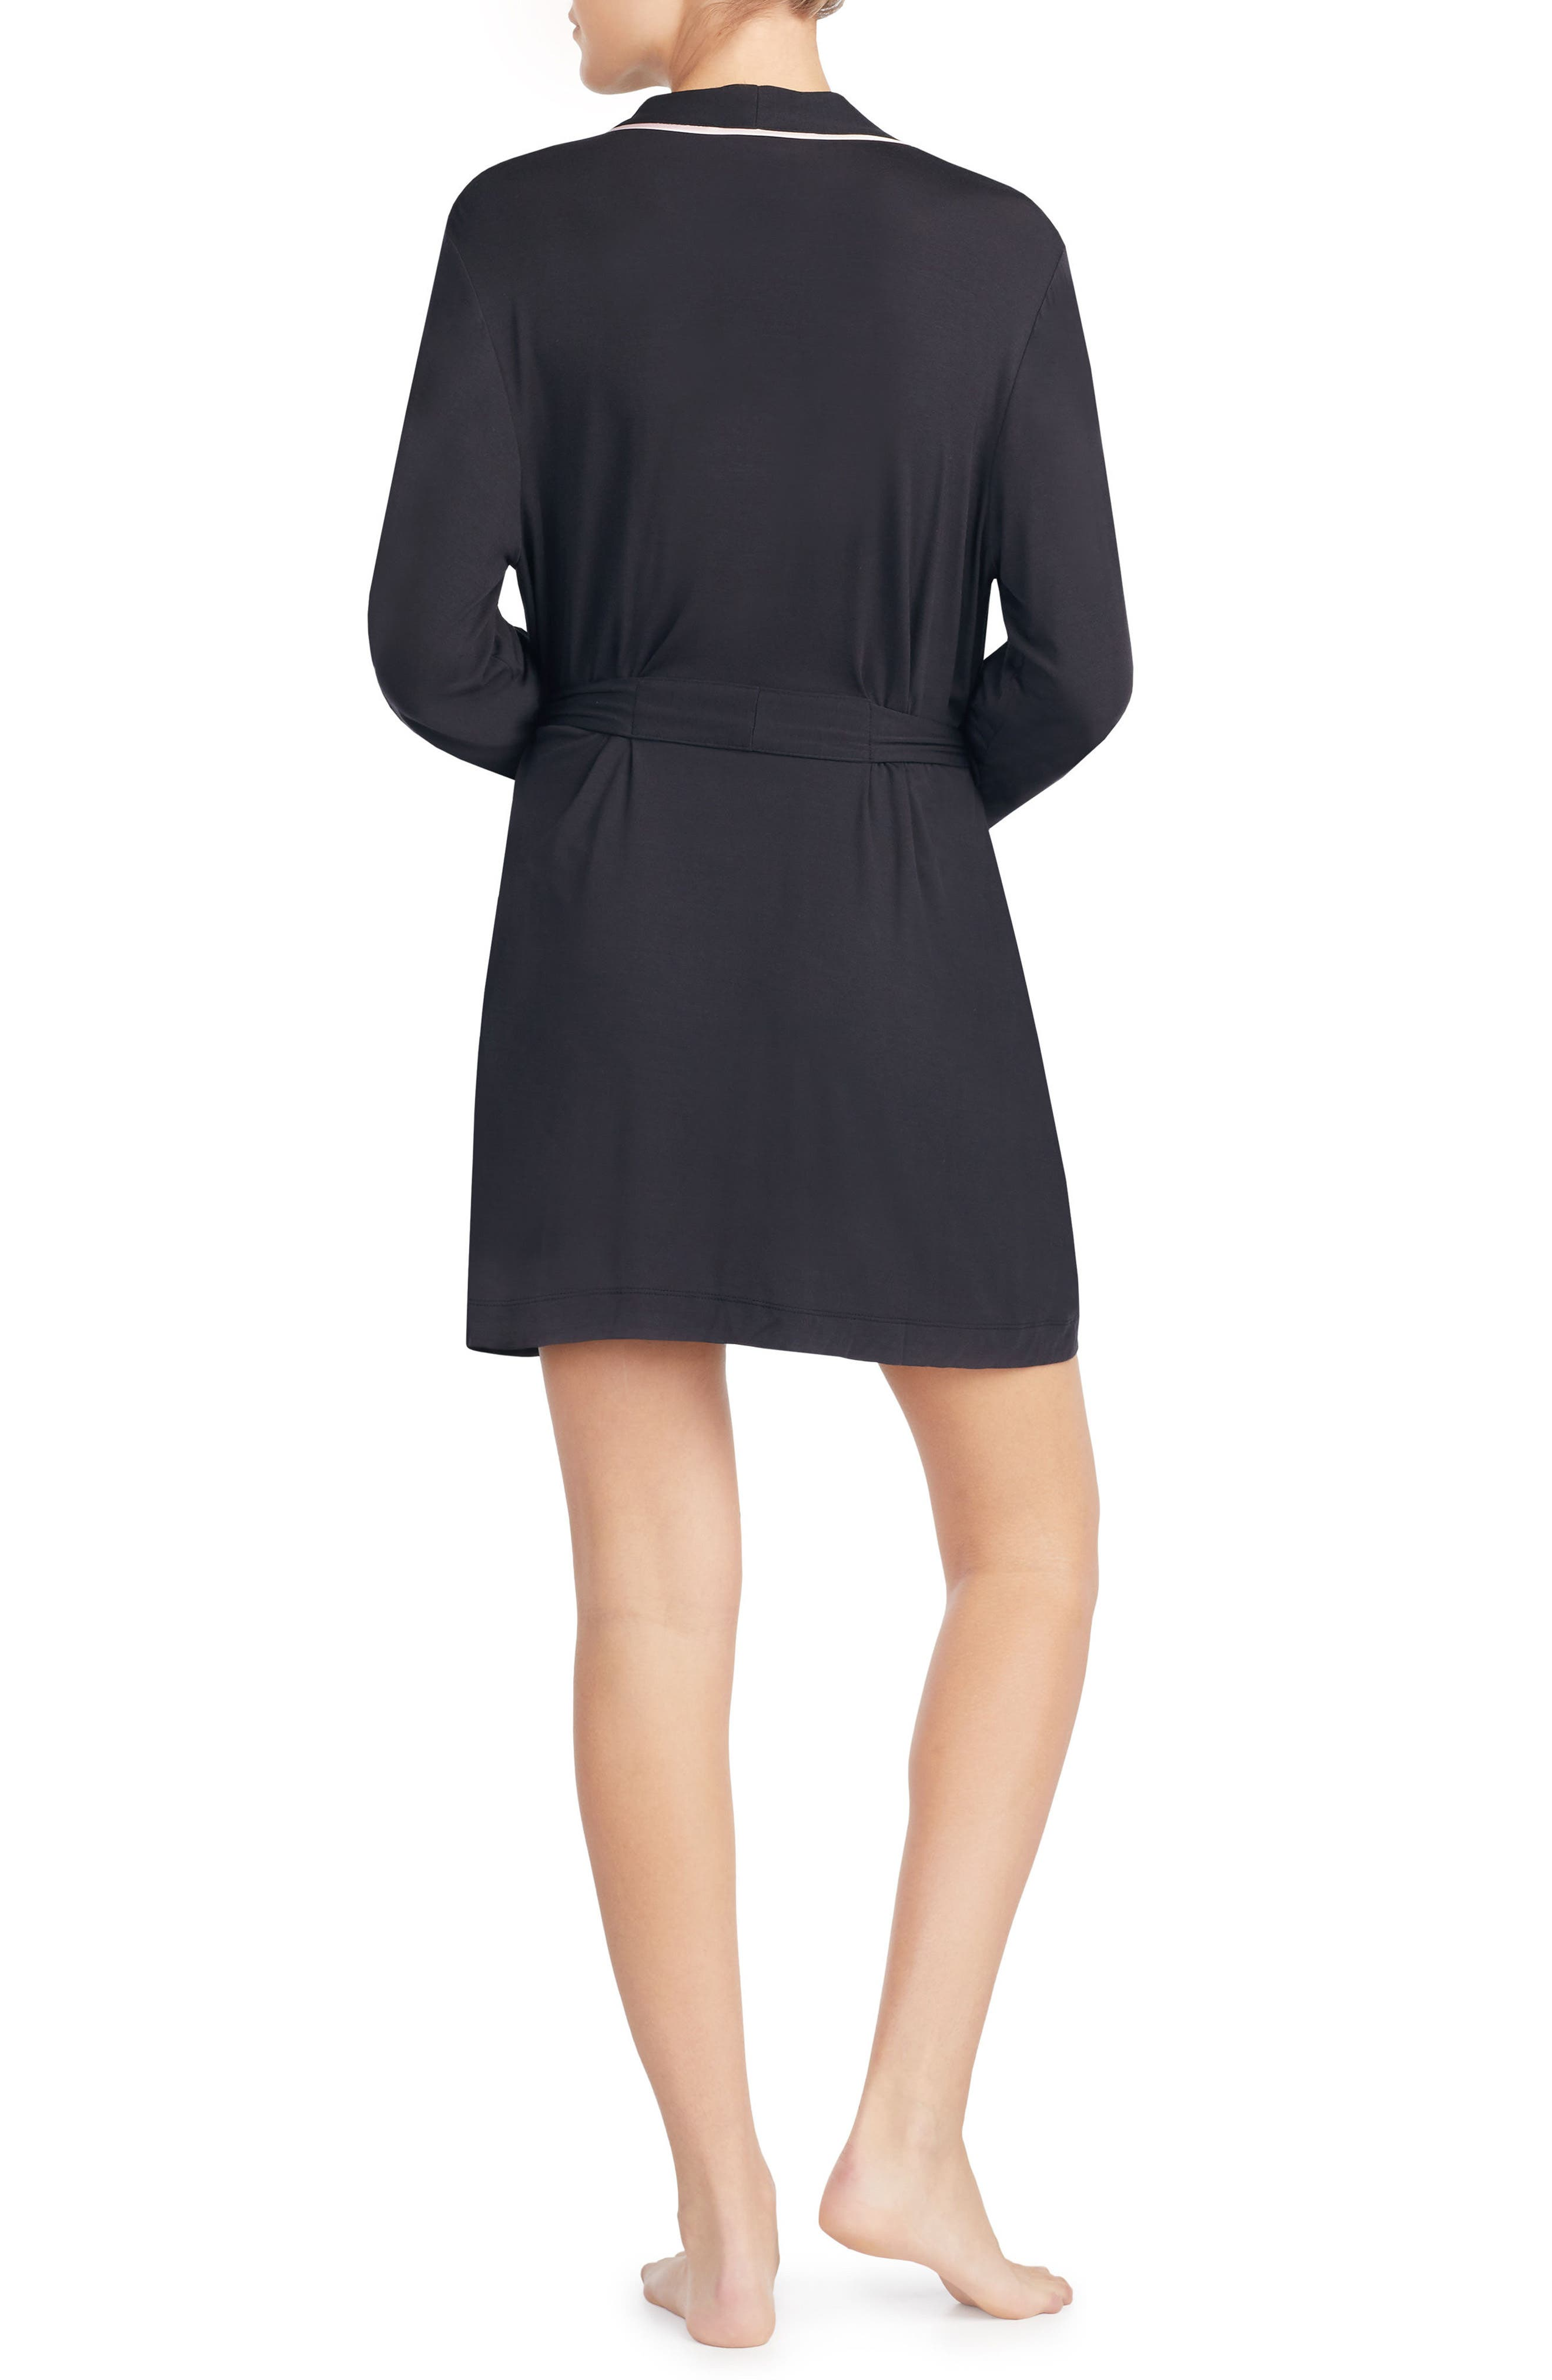 a1229101653 kate spade new york Women s Clothing